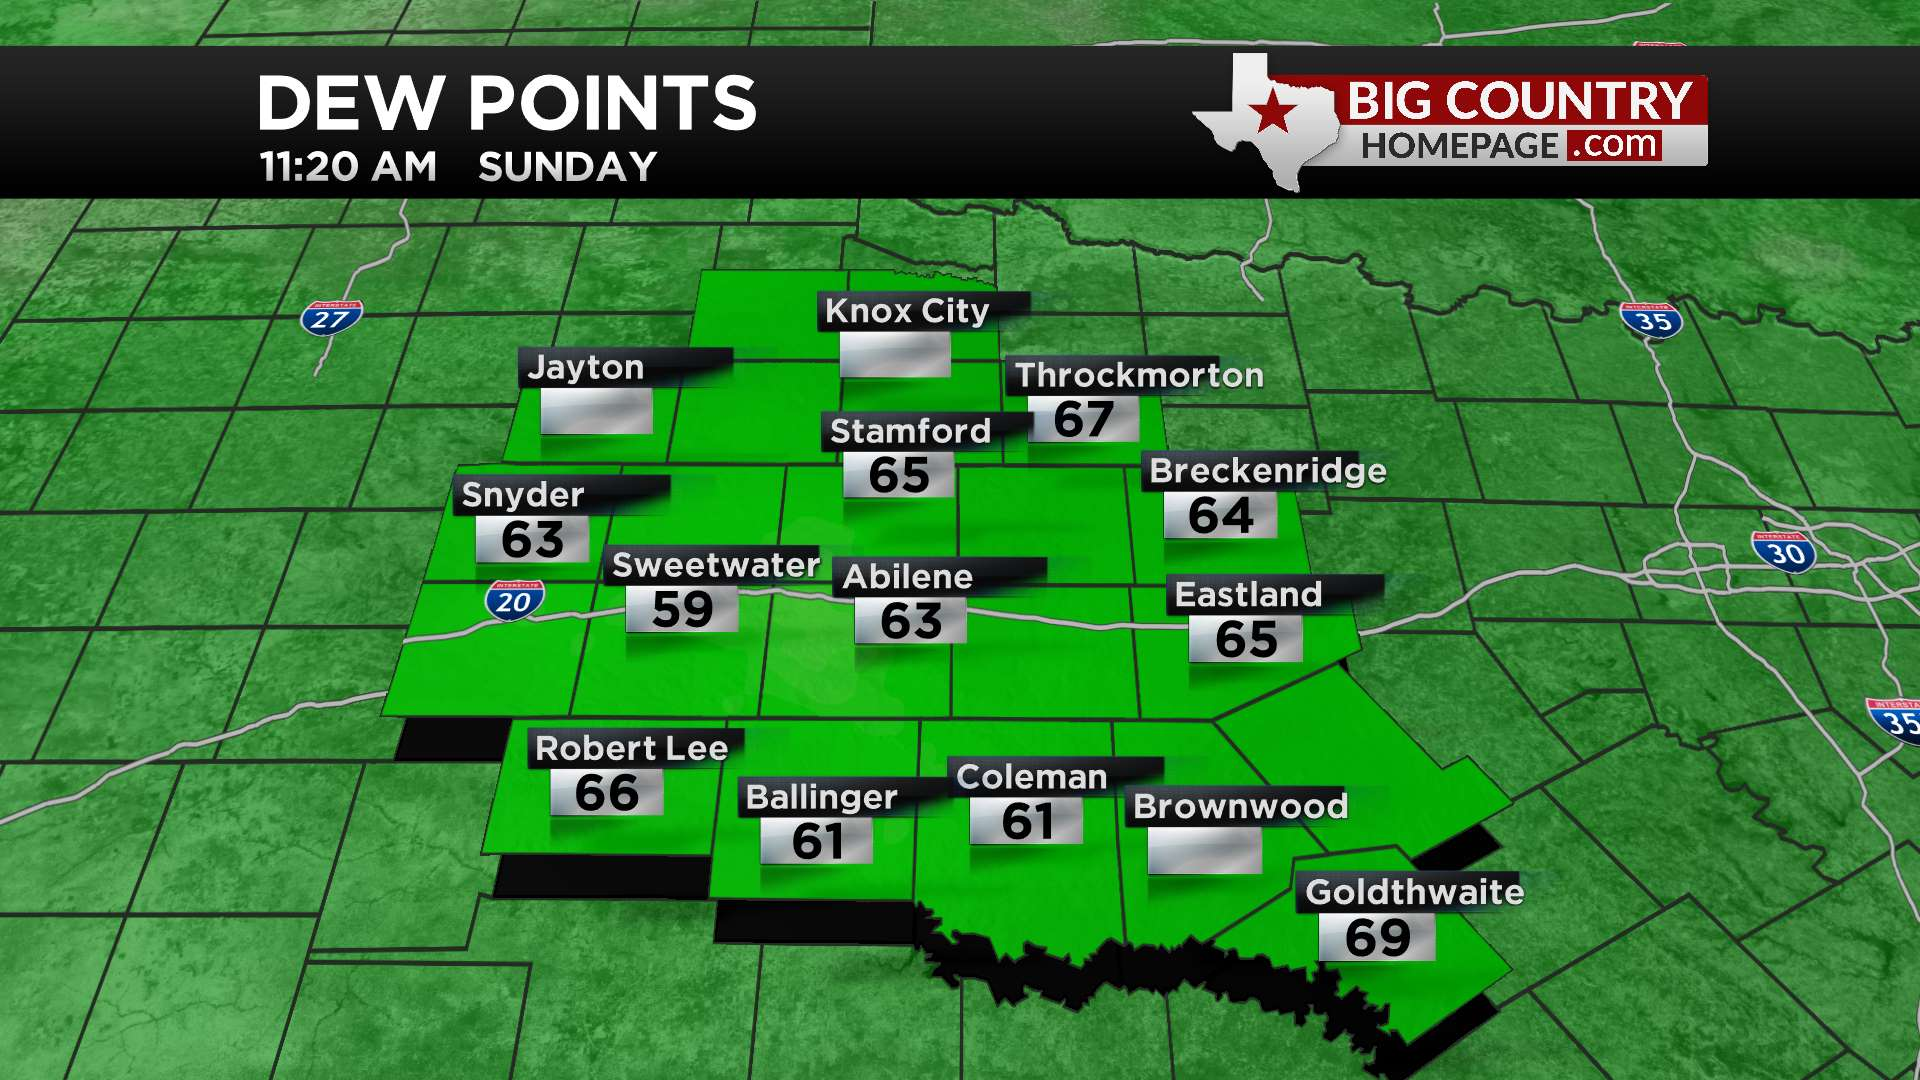 Big Country Dewpoints